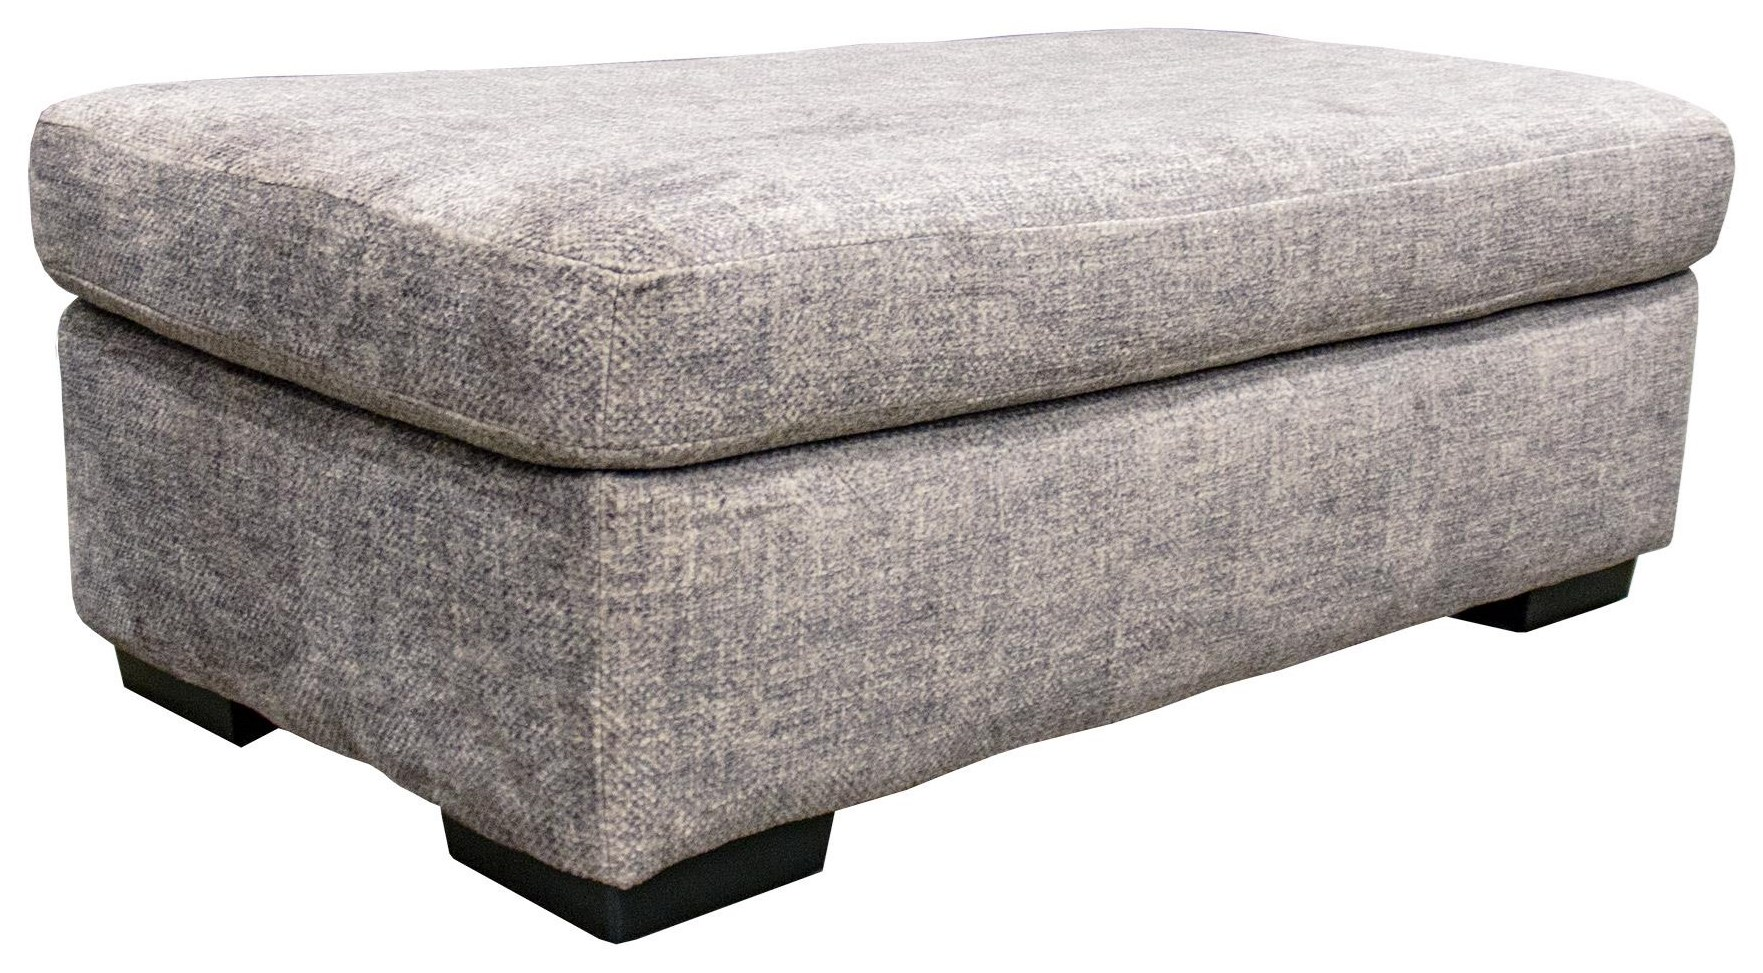 Albany 8668 Ottoman - Item Number: 8668-30-GENS-26292